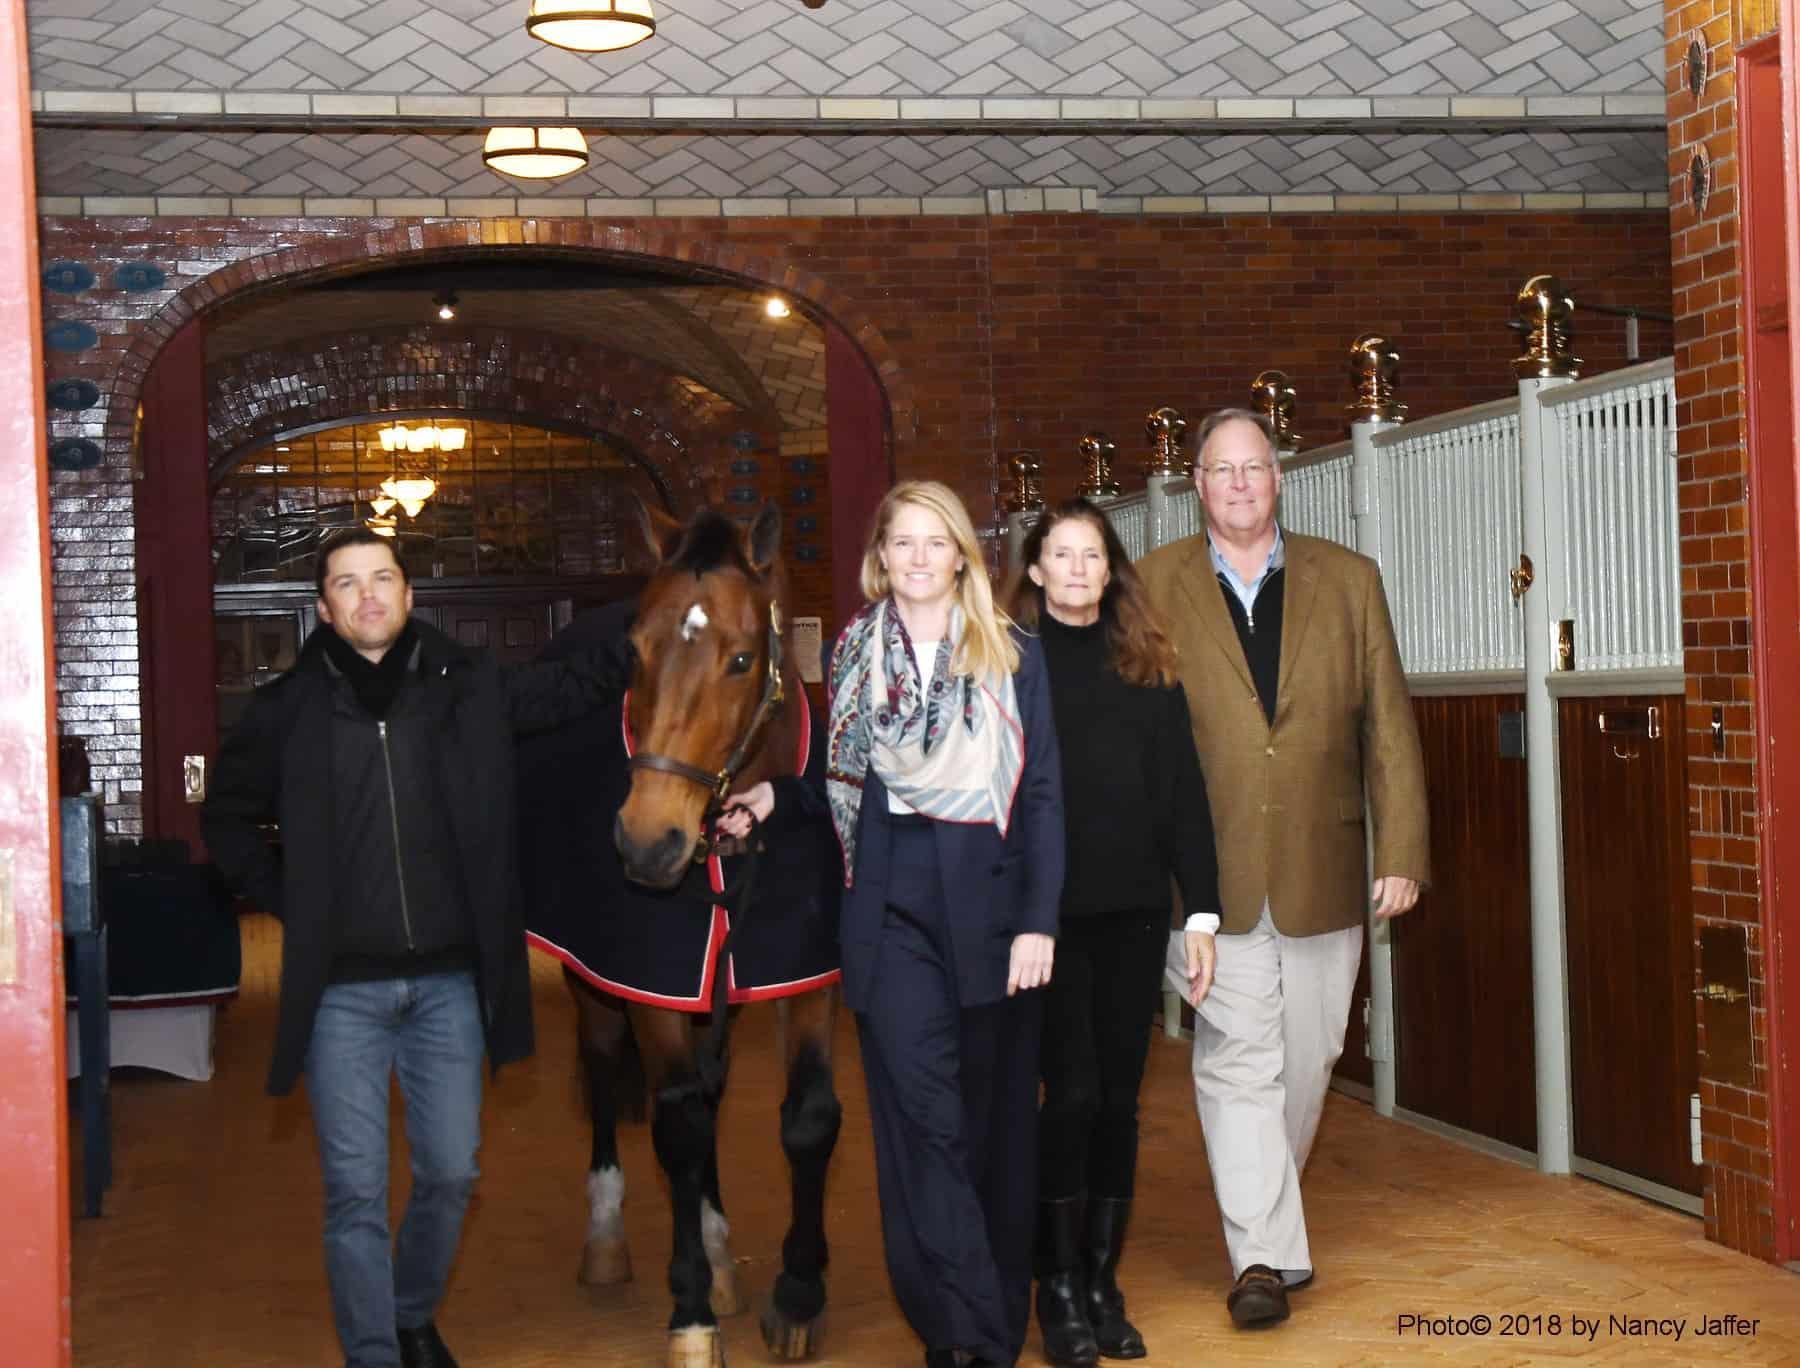 Madison on the way to her stall in the USET Foundation stable with Kent Farrington, Alexa Weeks Pessoa, and her parents, Olivia and Bill Weeks. Photo by Nancy Jaffer